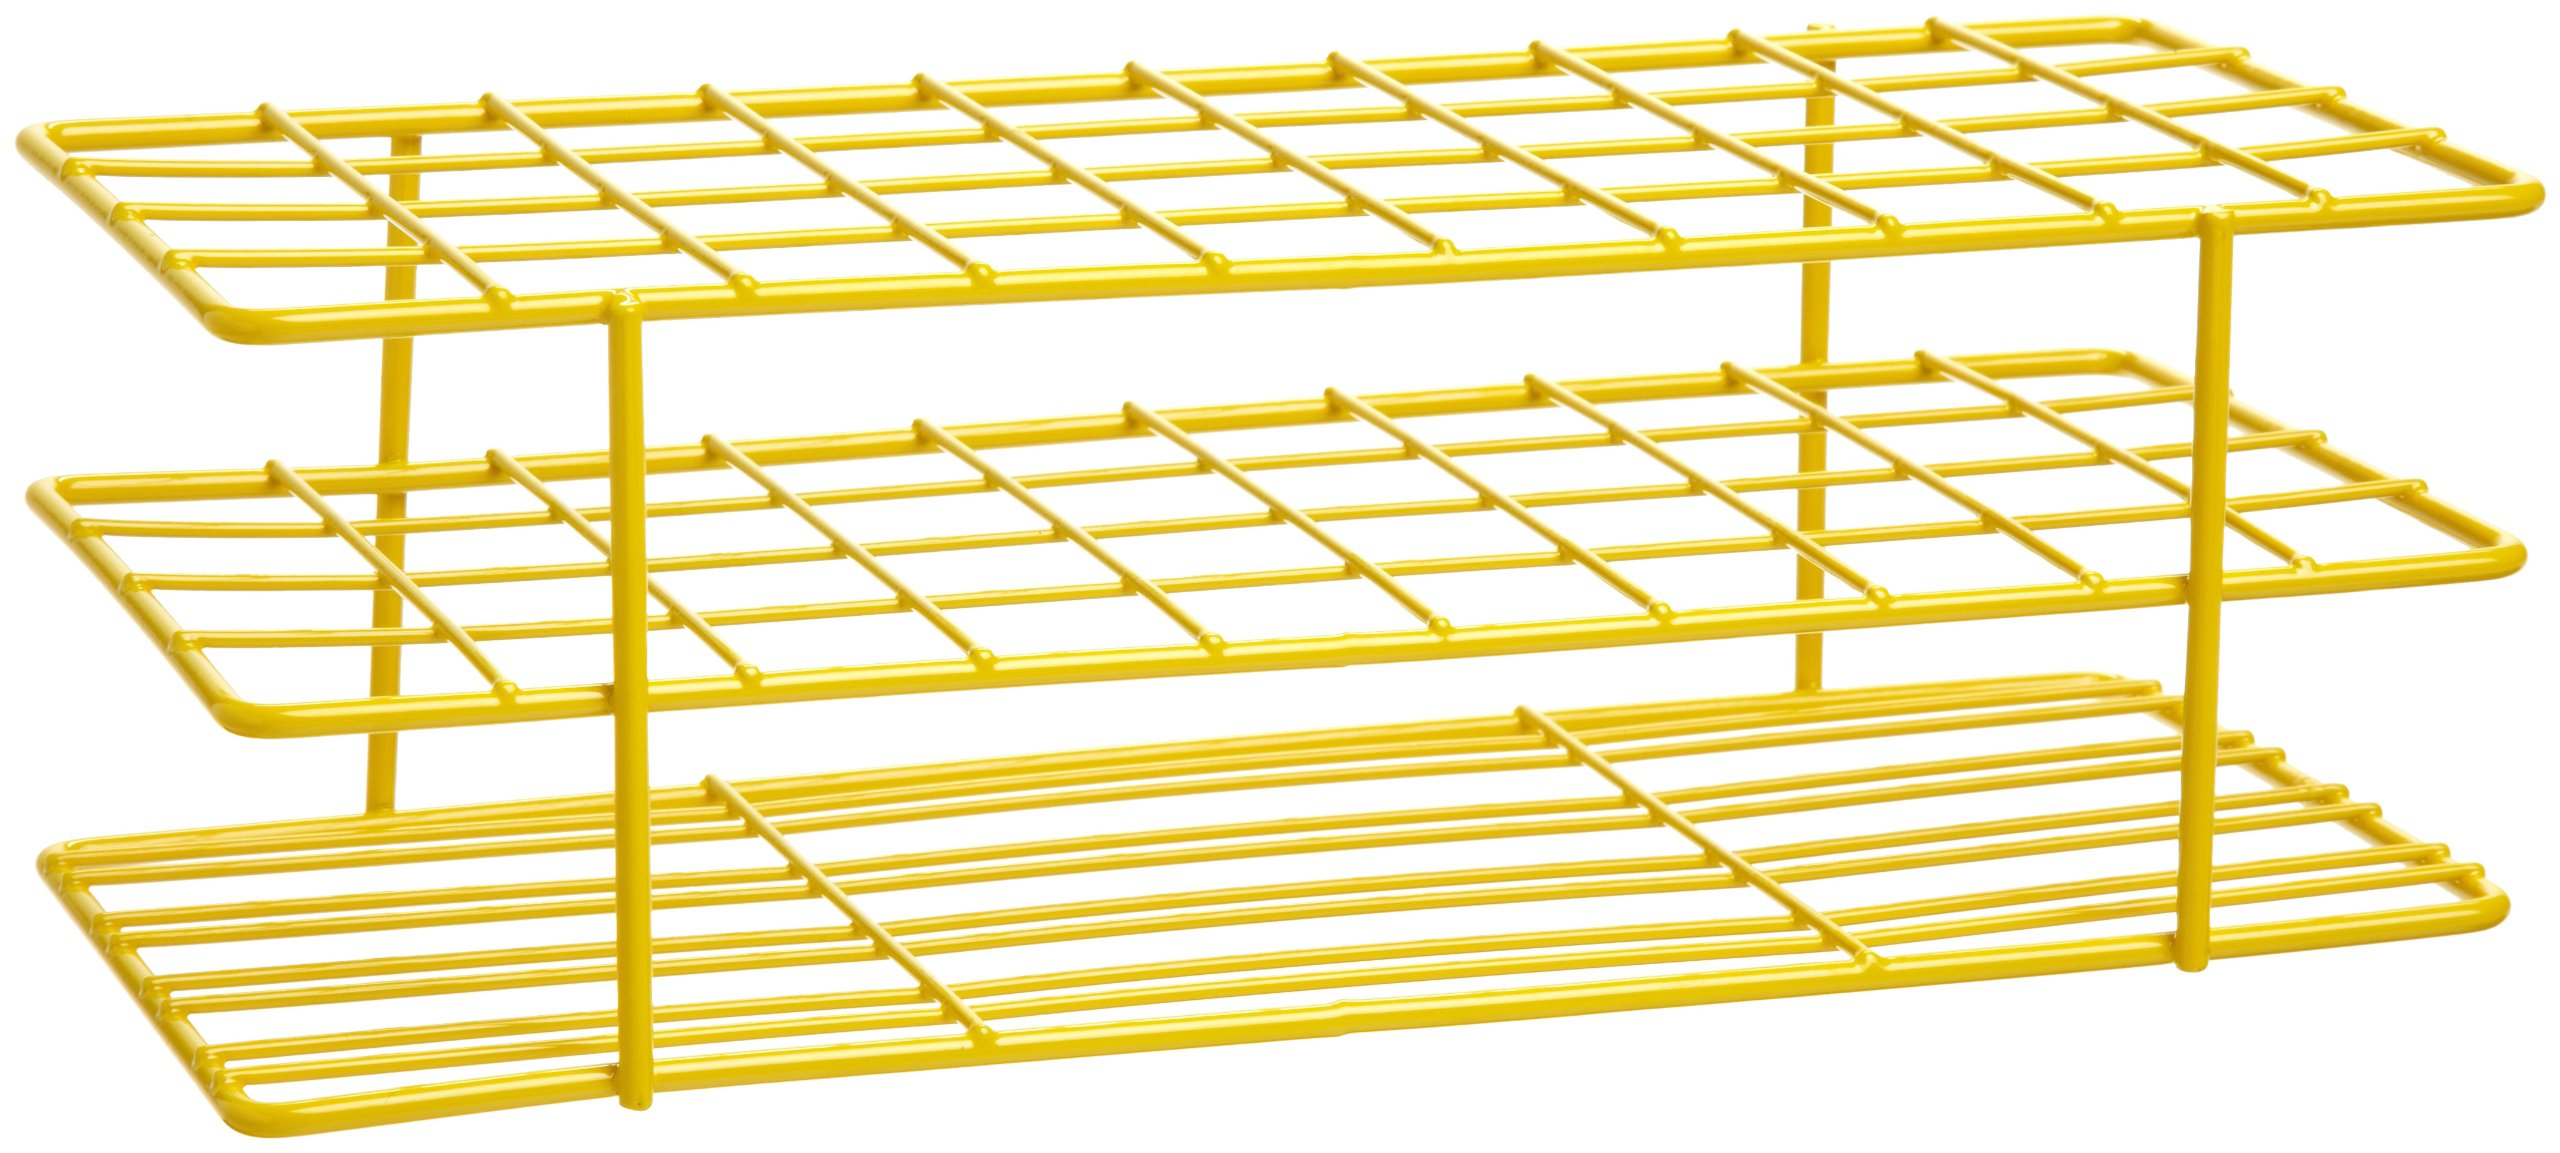 Bel-Art F18762-0002 Poxygrid Test Tube Rack; 16-20mm, 40 Places, 9⁹/₁₆ x 4¹/₄ x 3¹/₄ in., Yellow by SP Scienceware